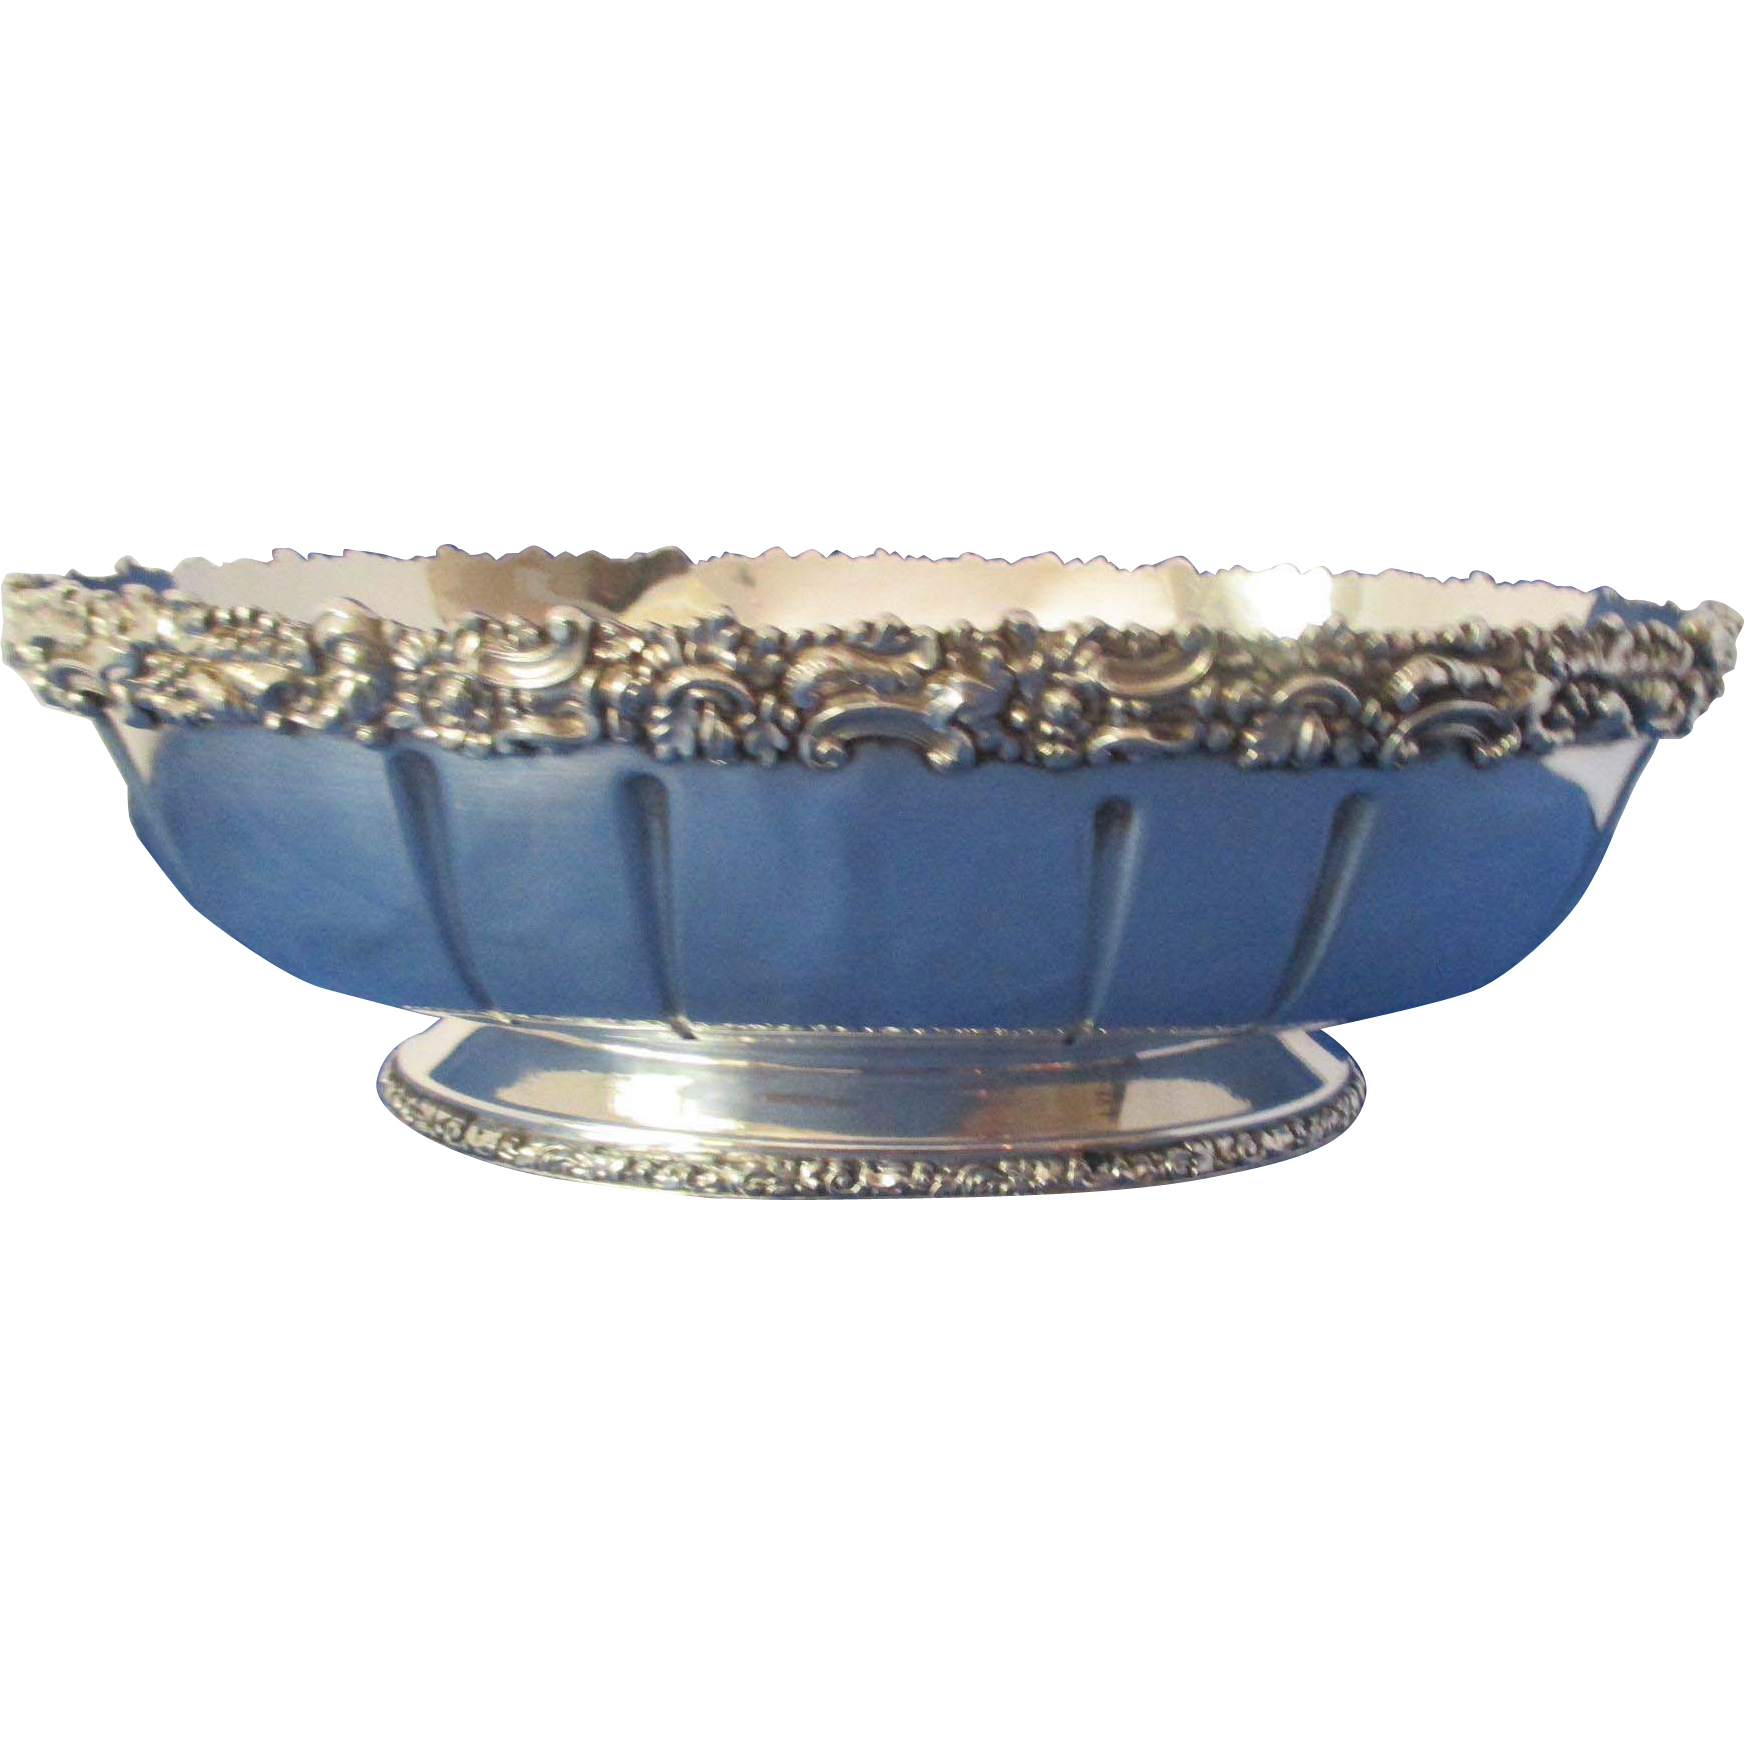 Ellis barker oval centerpiece bowl from topdraw on ruby lane